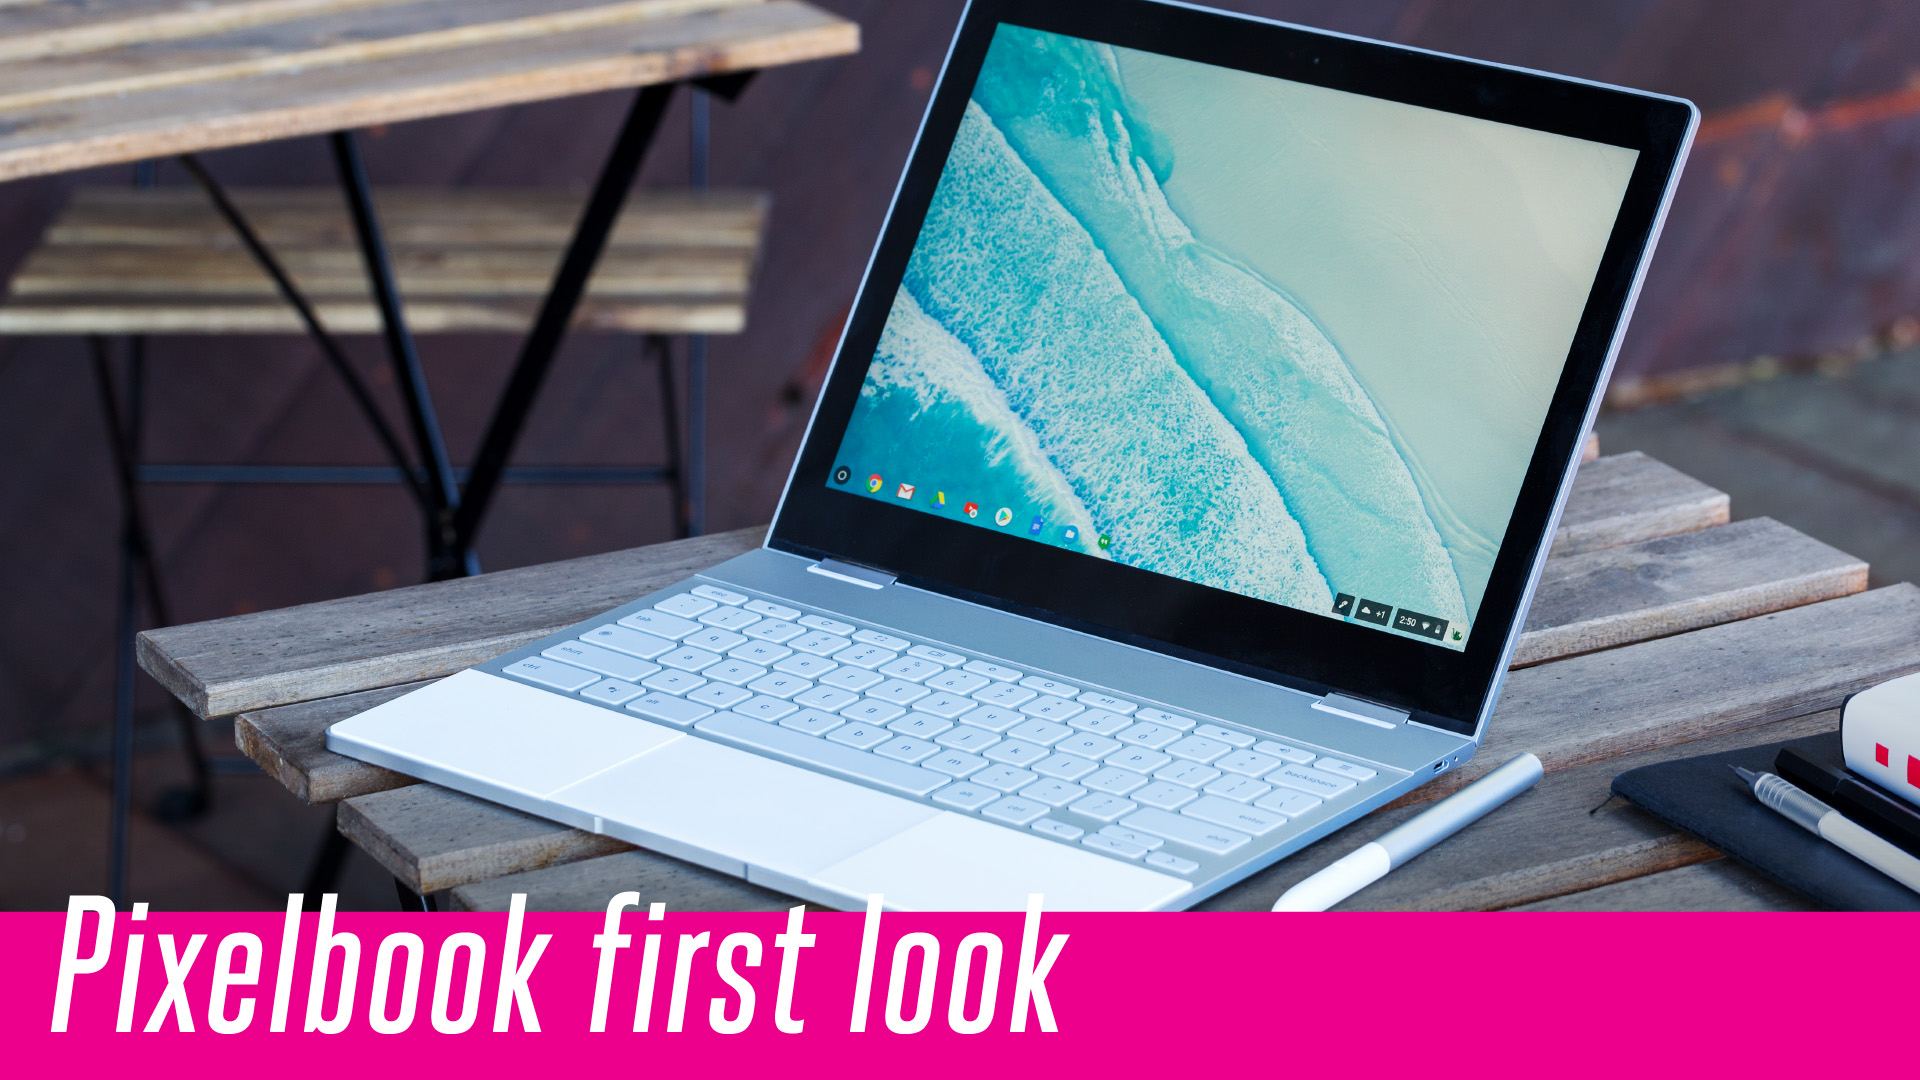 Pixelbook first look